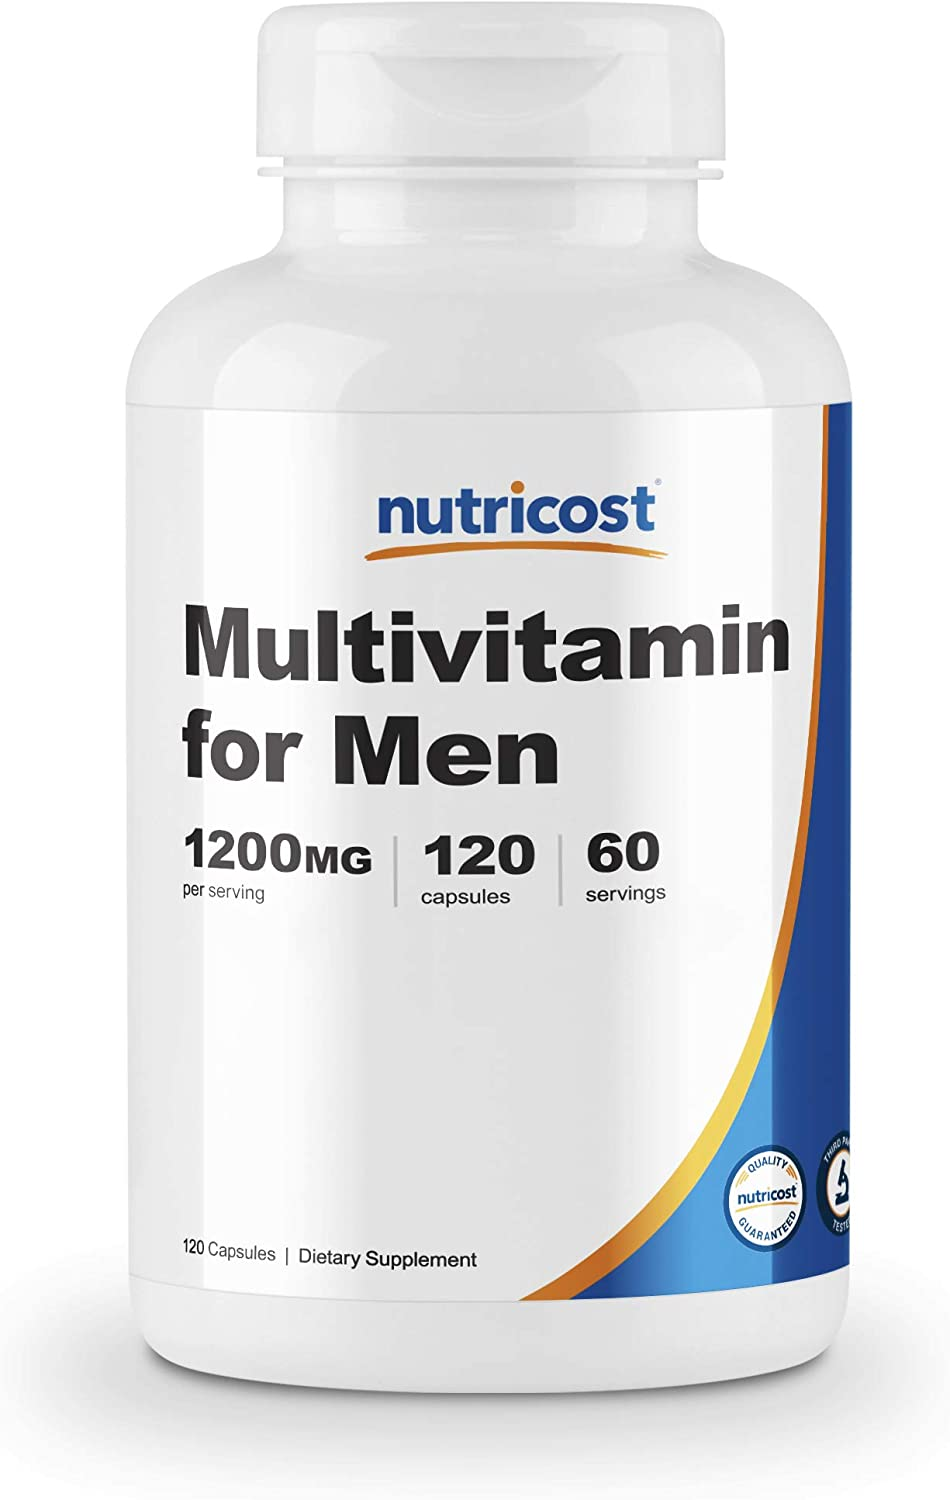 Nutricost Multivitamin for Men 120 Capsules - Vitamins and Minerals for The Healthy Man